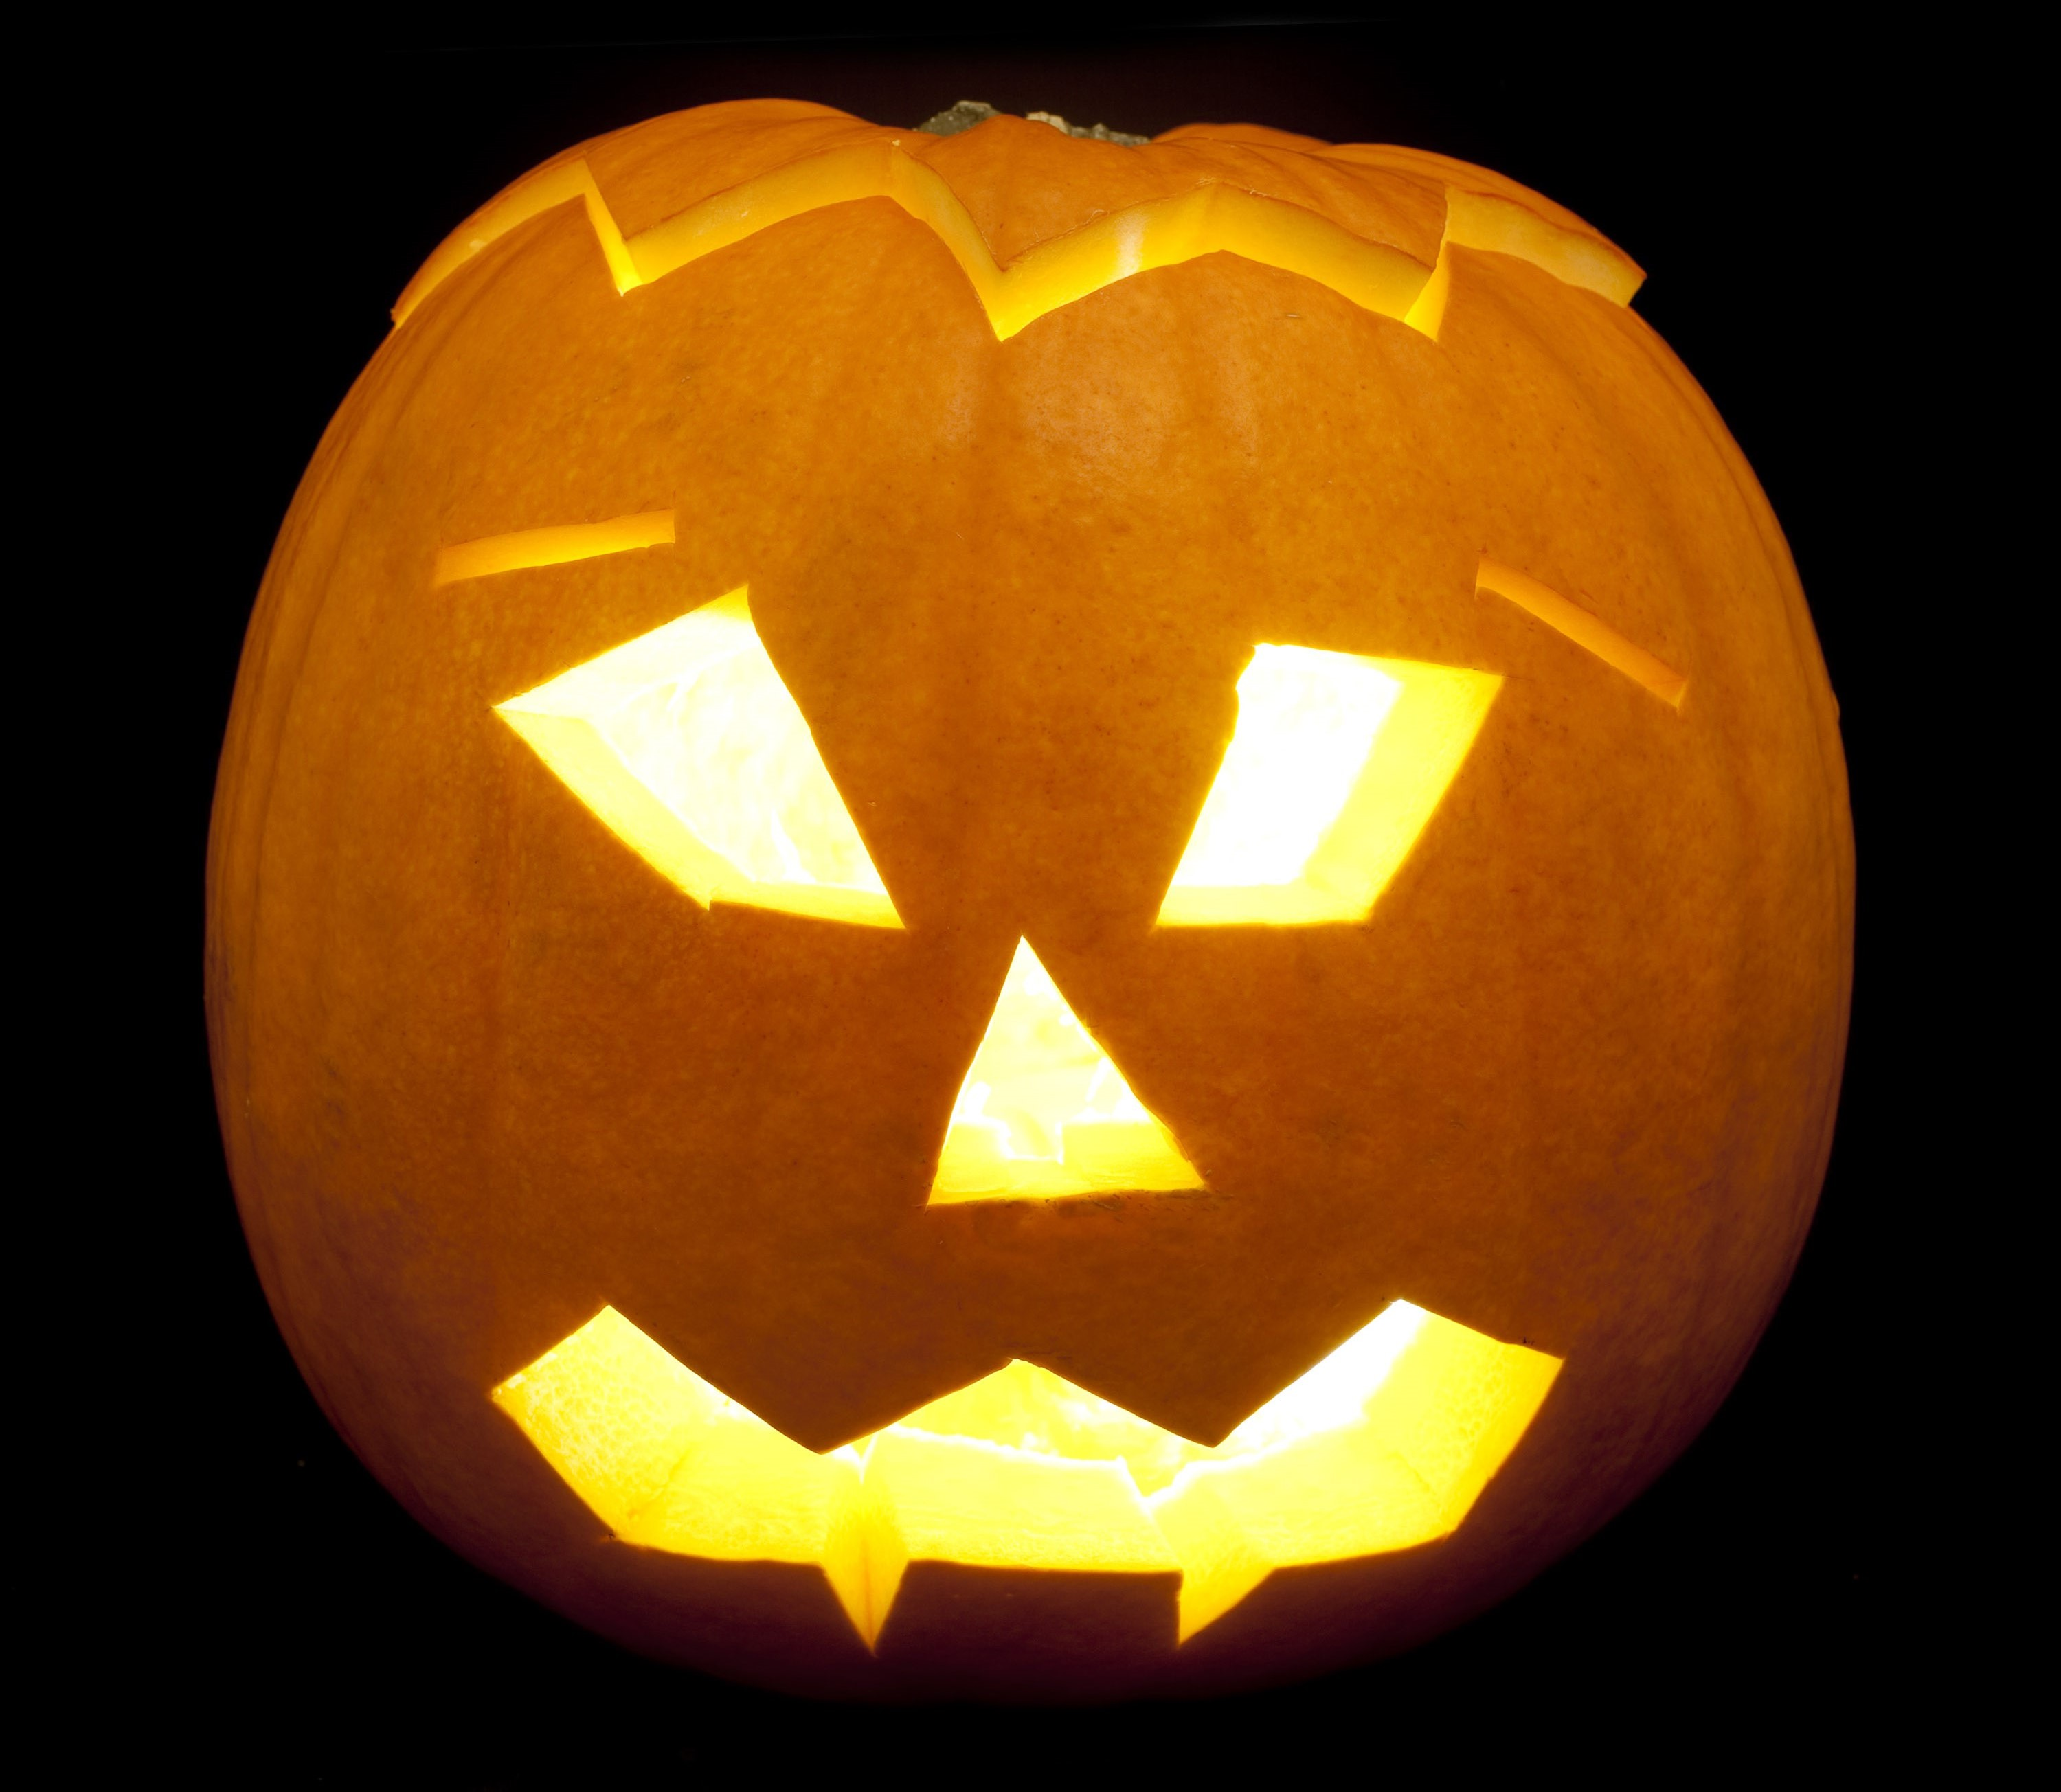 Uncategorized Pumpkin Scary image of scary pumpkin lantern creepyhalloweenimages a carved decorative halloween with light inside